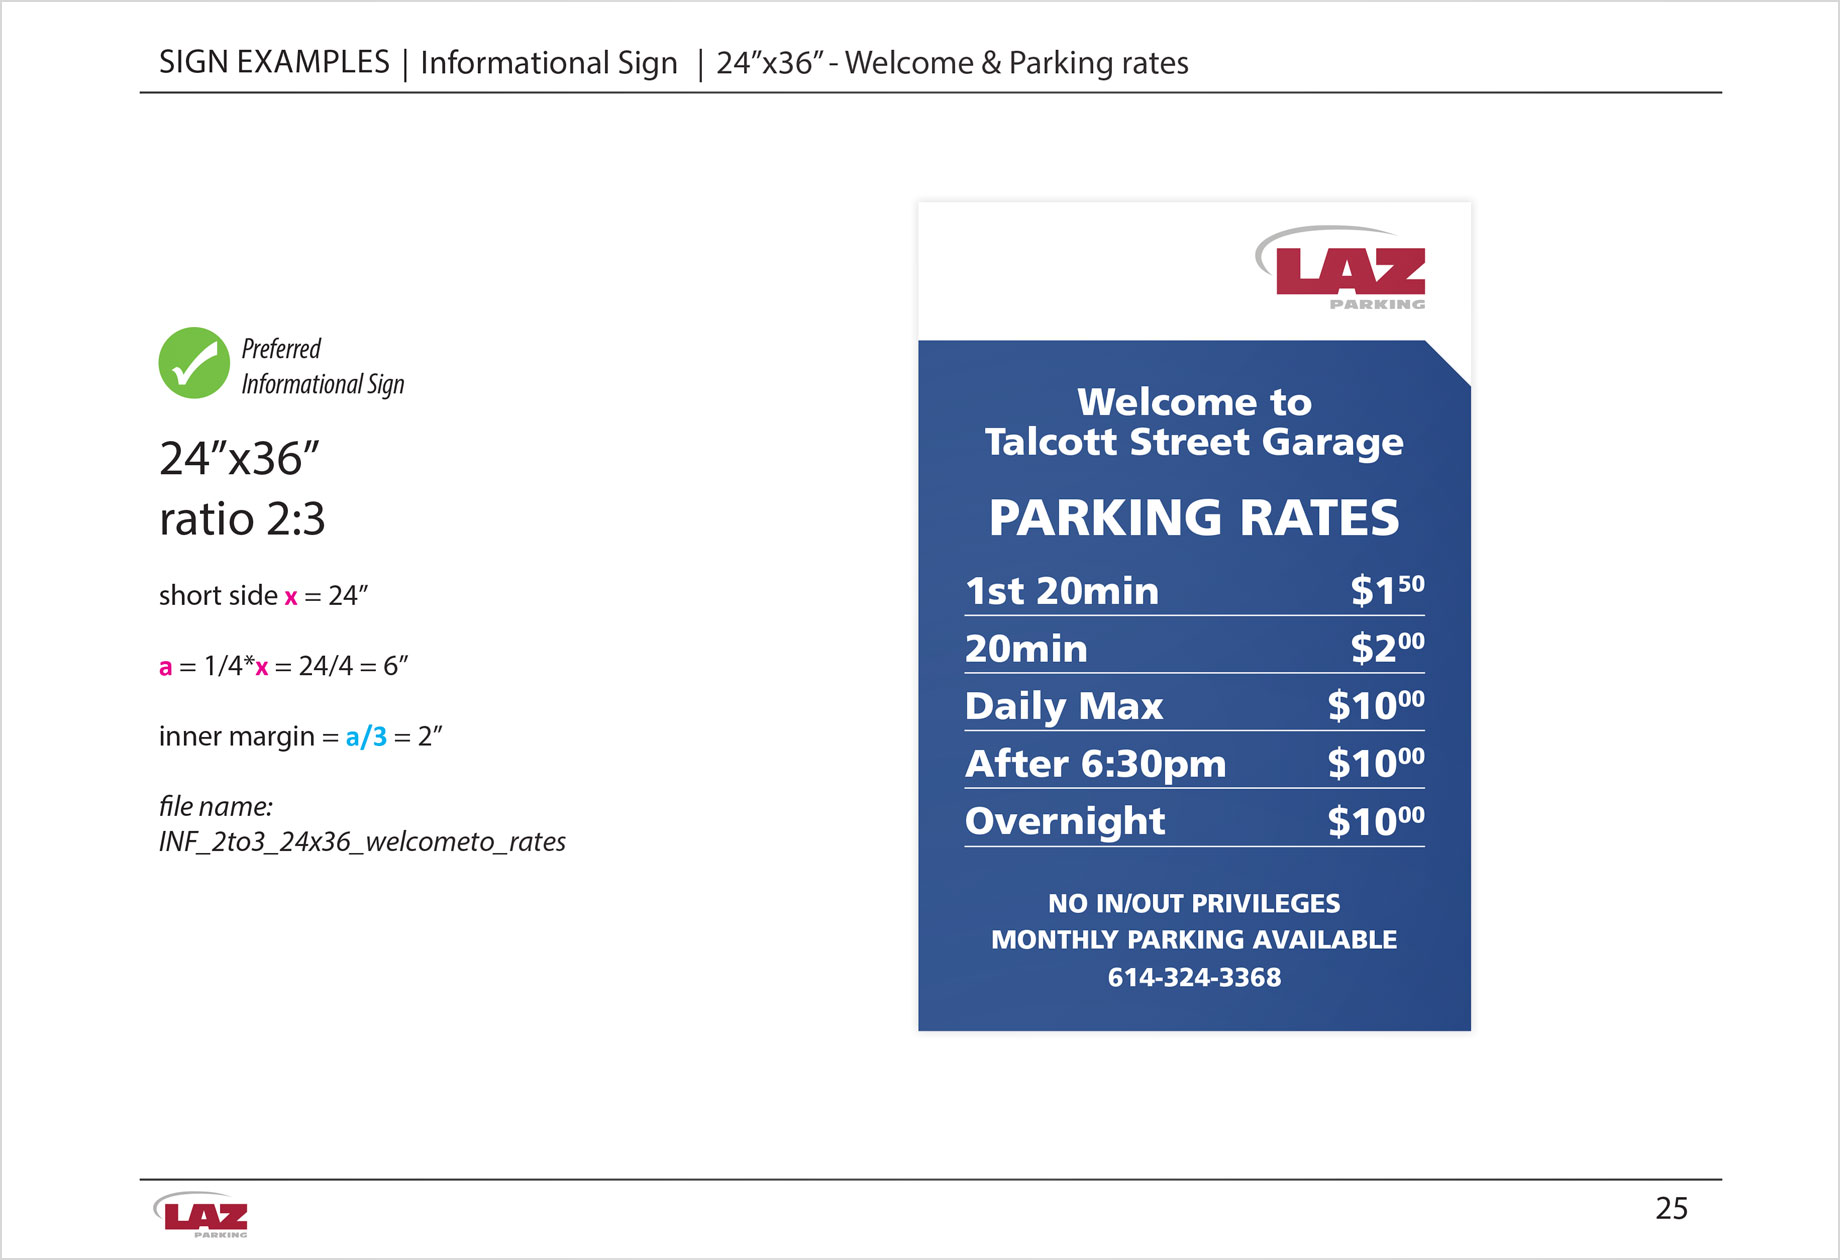 LAZ parking rates